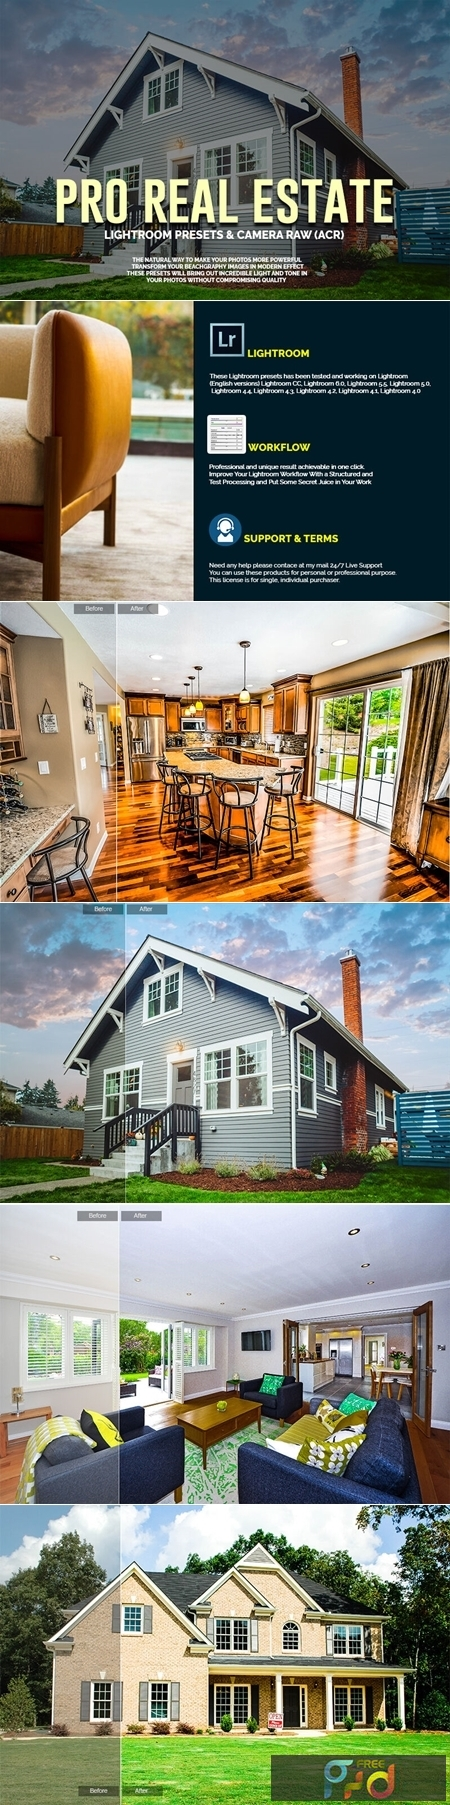 PRO Real Estate LR Presets and Camera Raw(ACR) 1